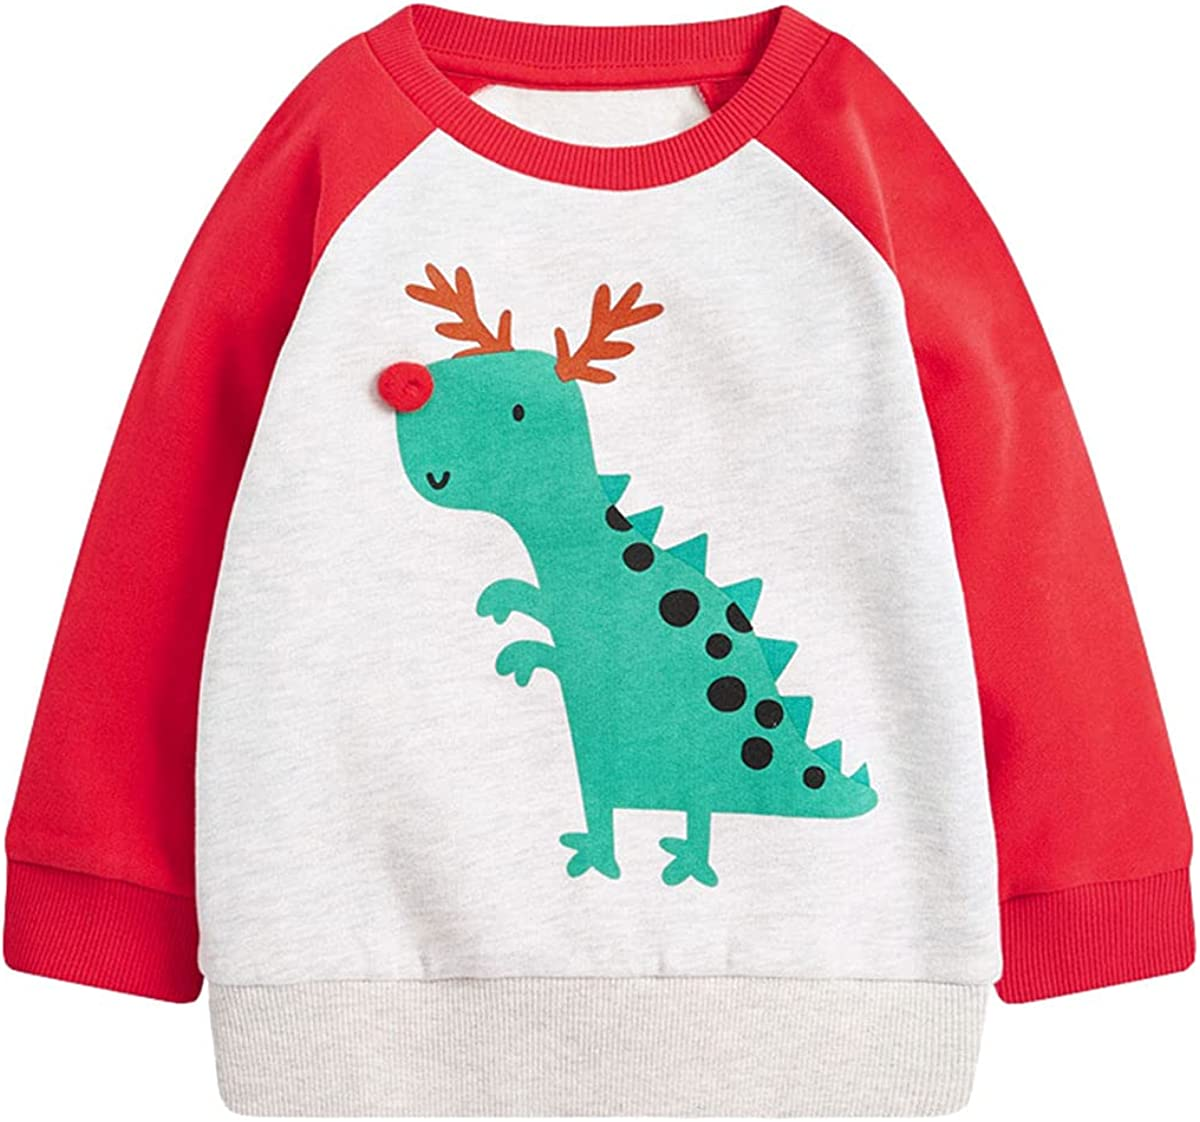 Casual Boys Long-Sleeve Crew Neck Sweater Cartoon Graphic Clothes 100% Cotton 2-7T